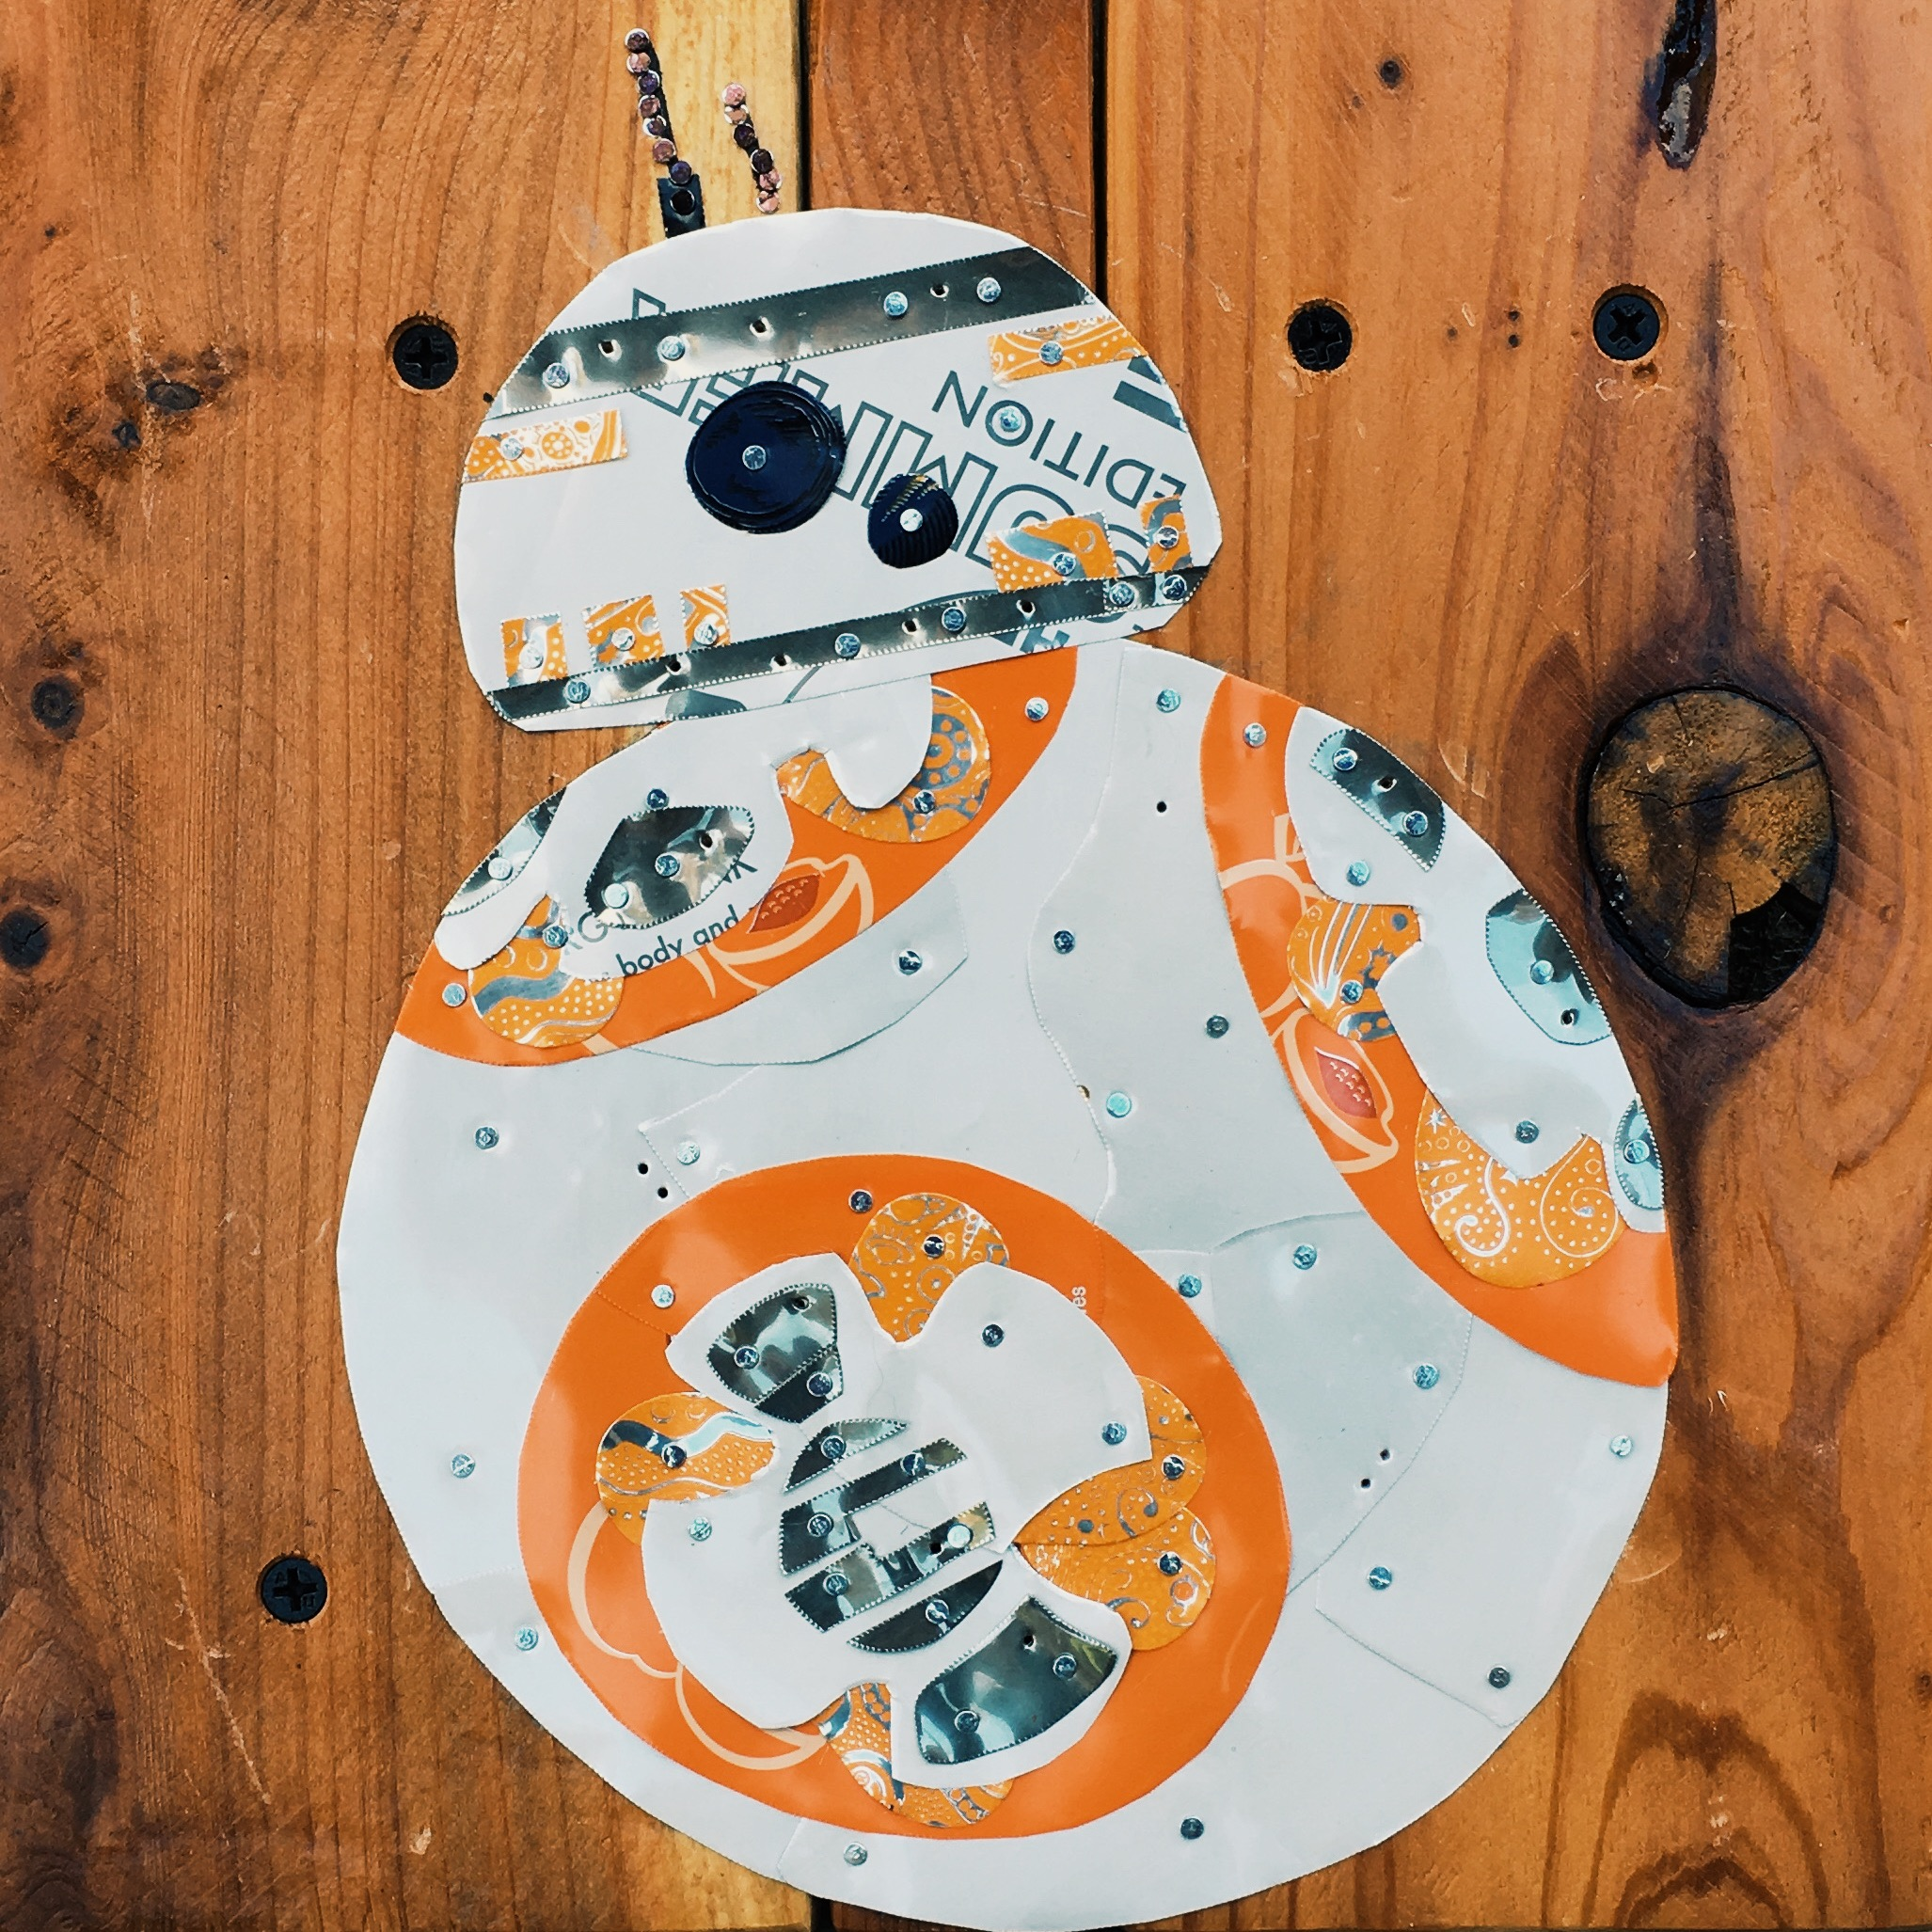 bb-8, star wars